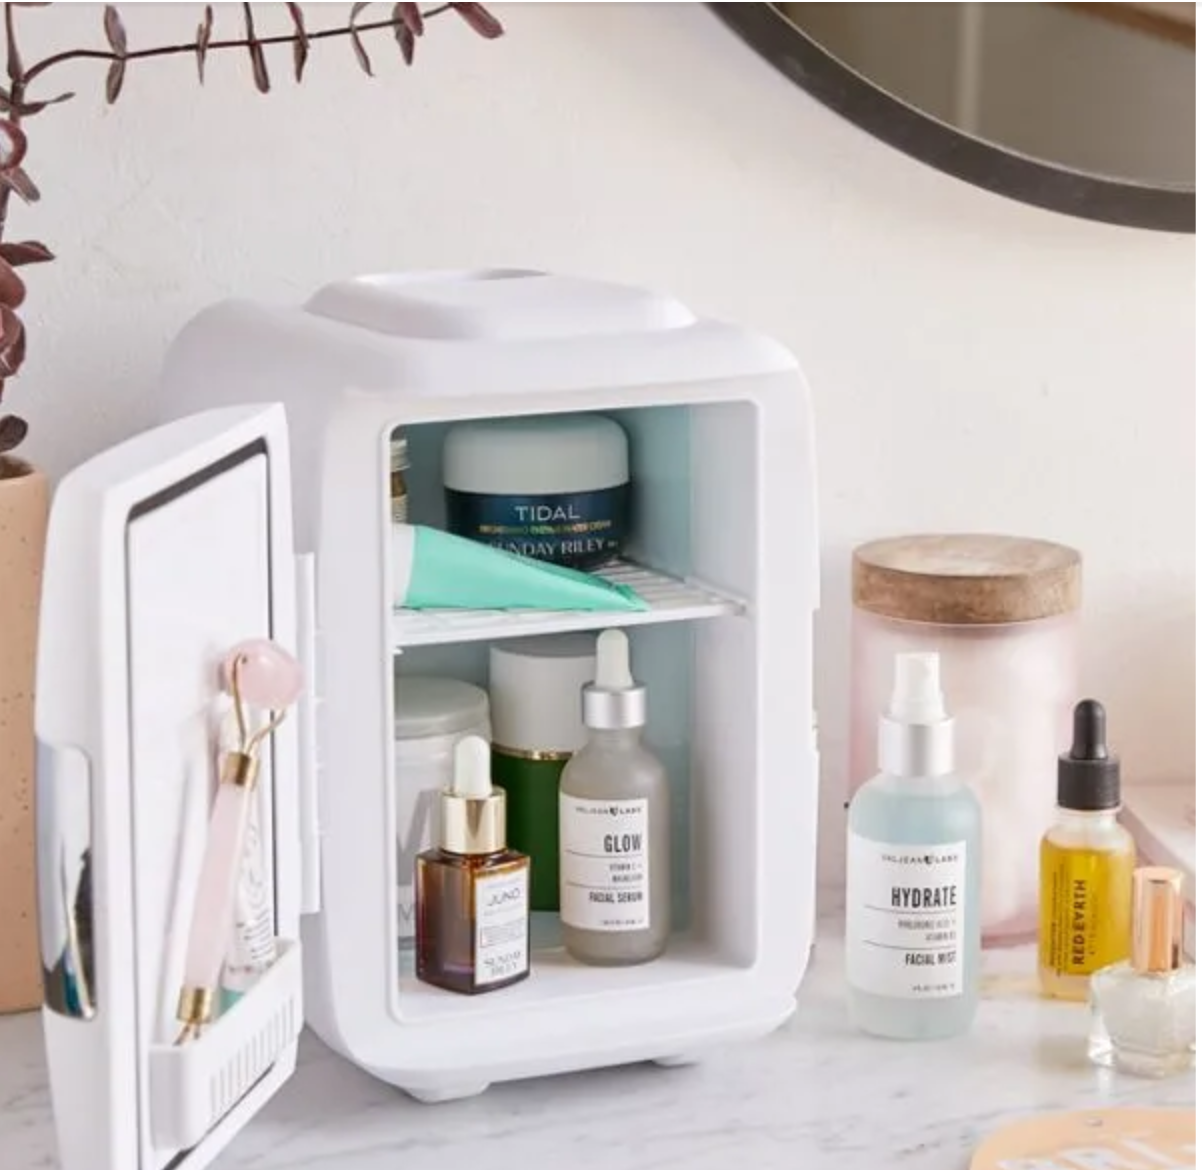 BENEFITS OF THOSE SKIN-CARE MINI FRIDGES -